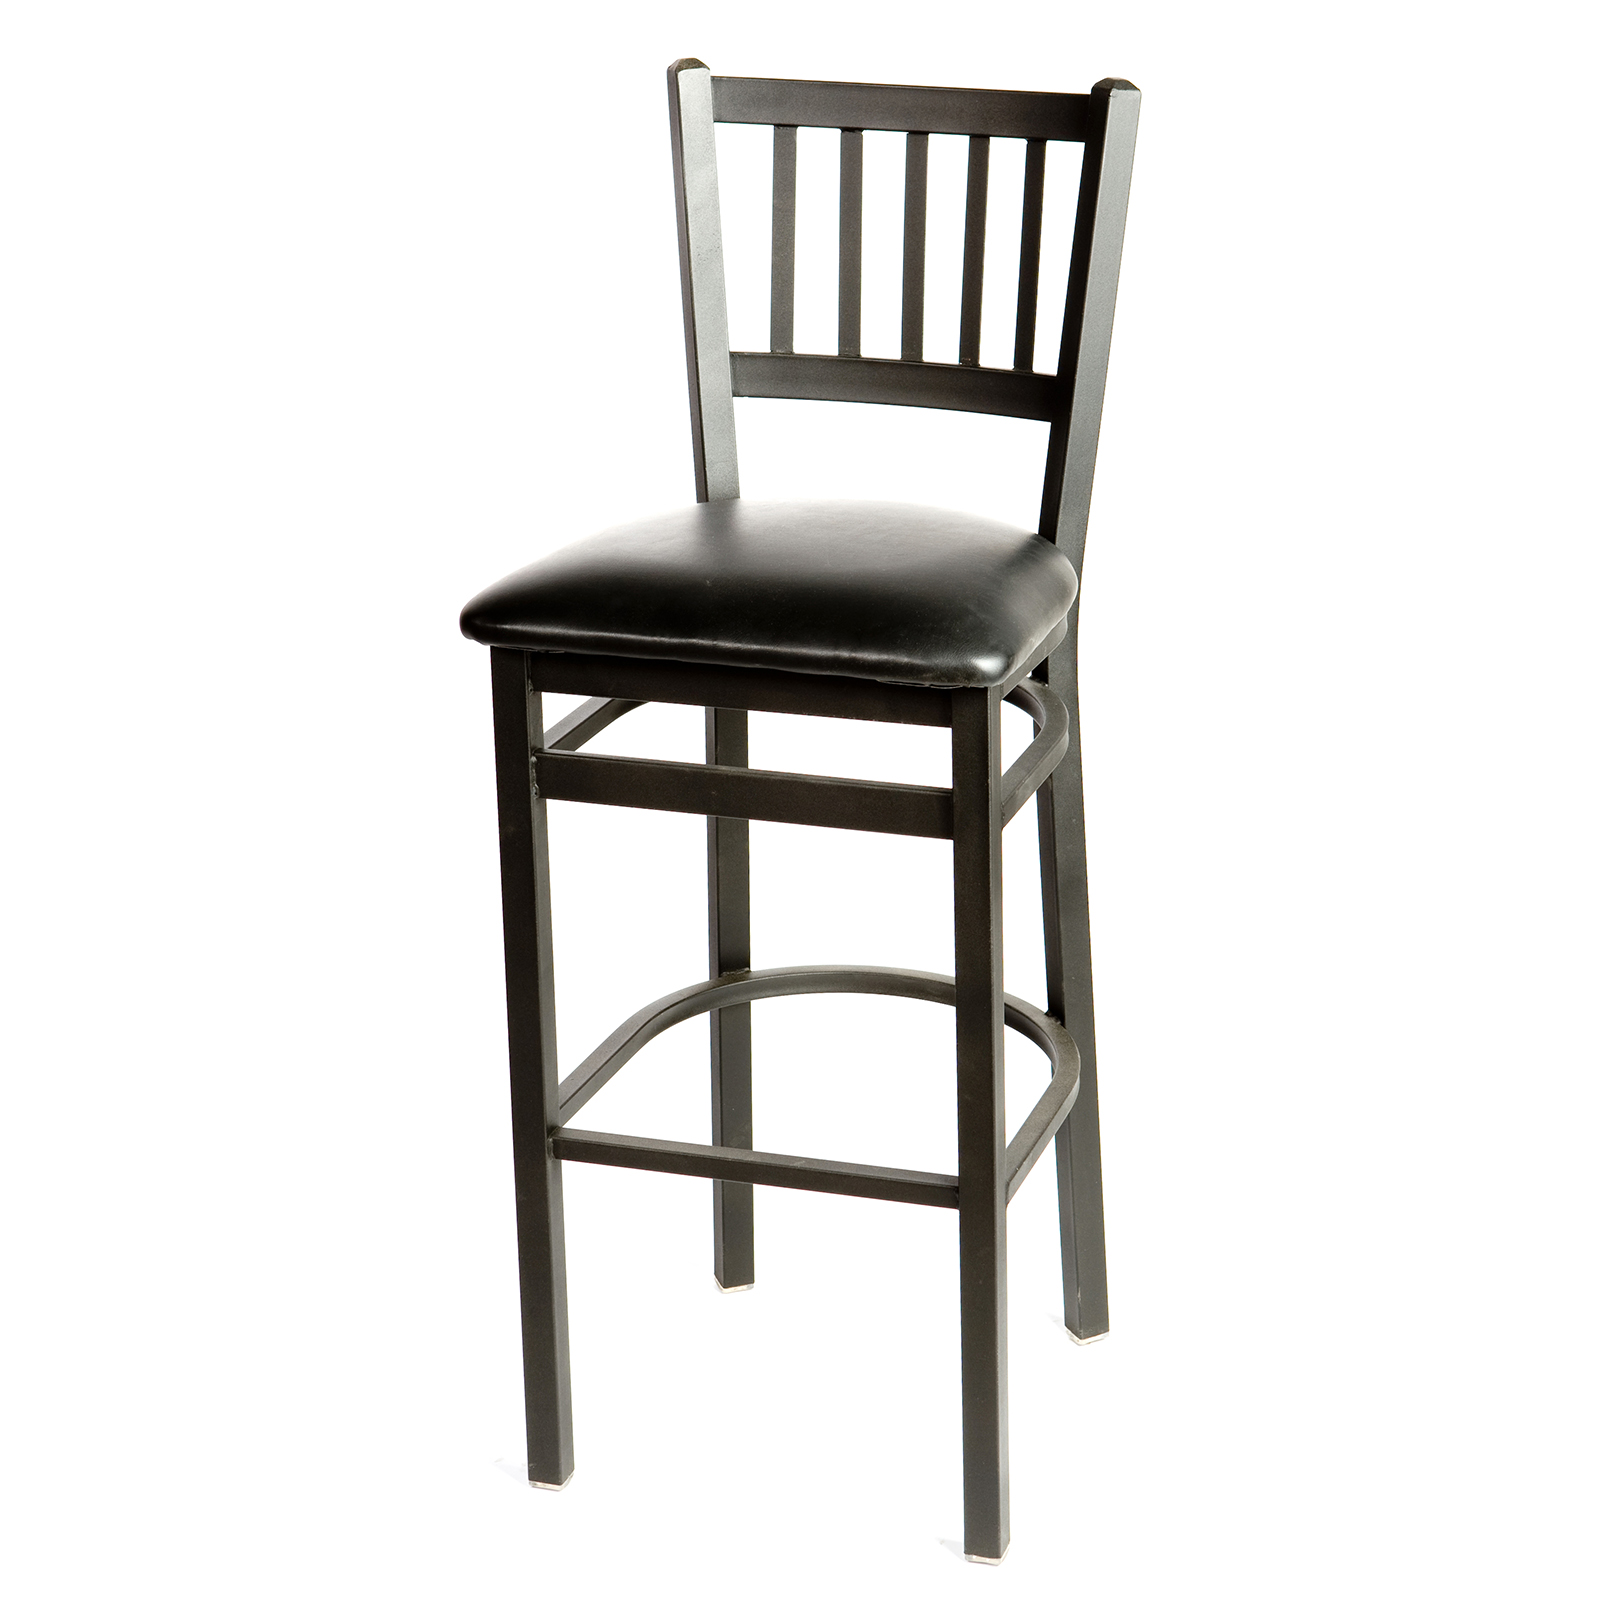 Oak Street SL2090-1-RW bar stool, indoor